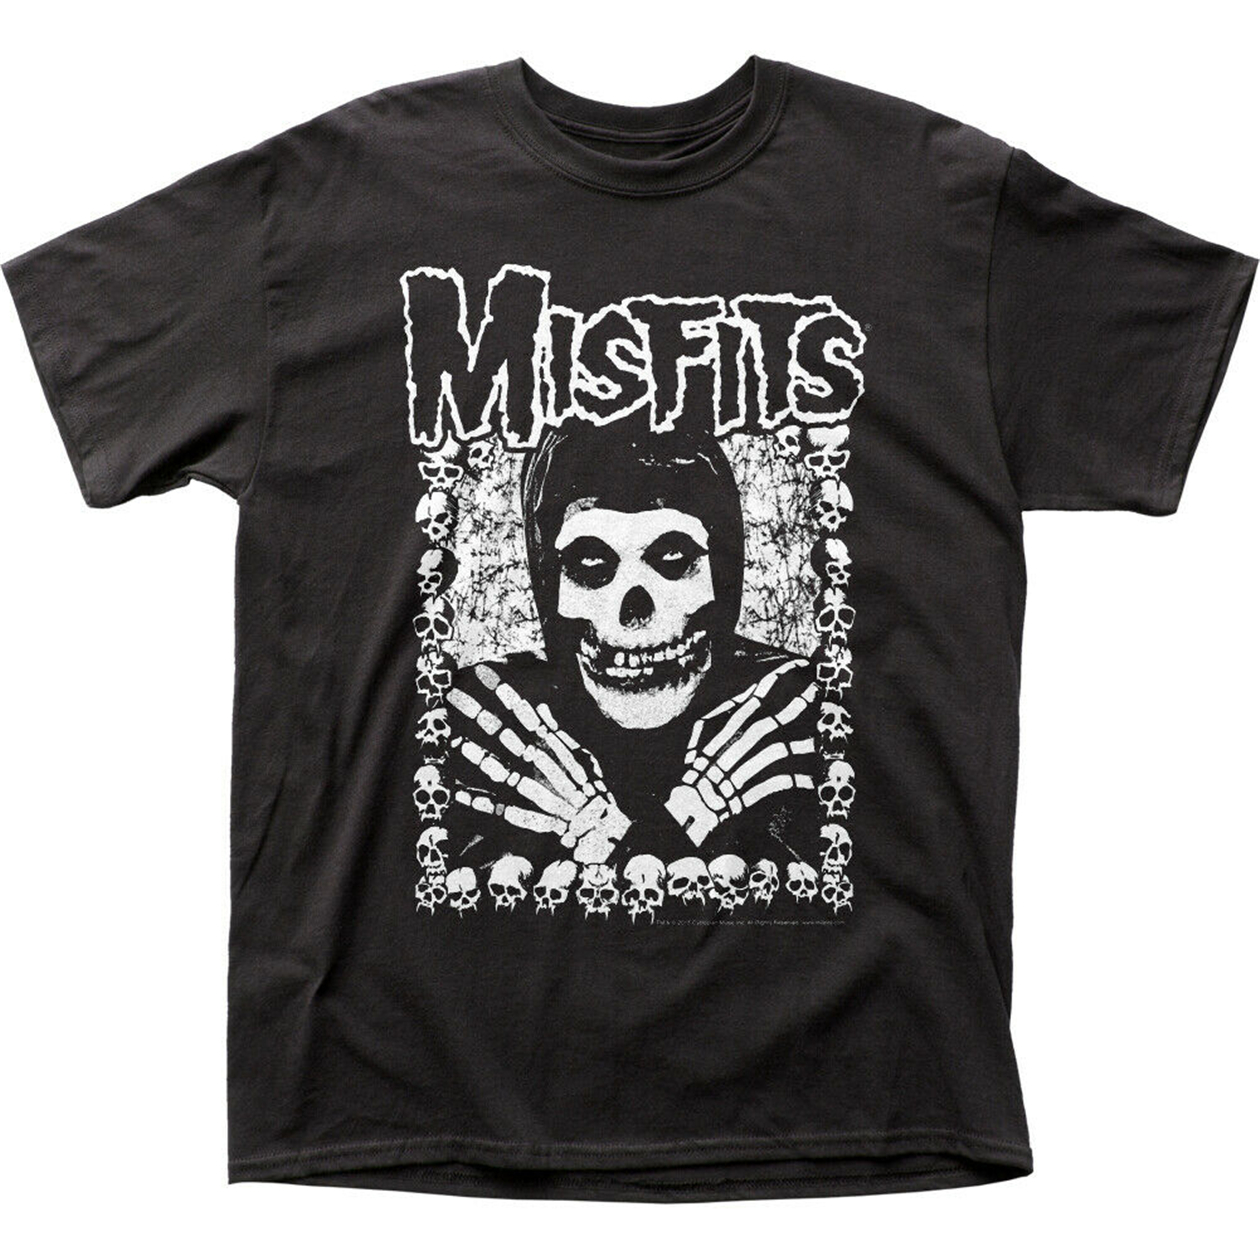 Misfits I Want Your Skulls Classic Adult Tops Tee T Shirt Fashion Classic T-Shirt